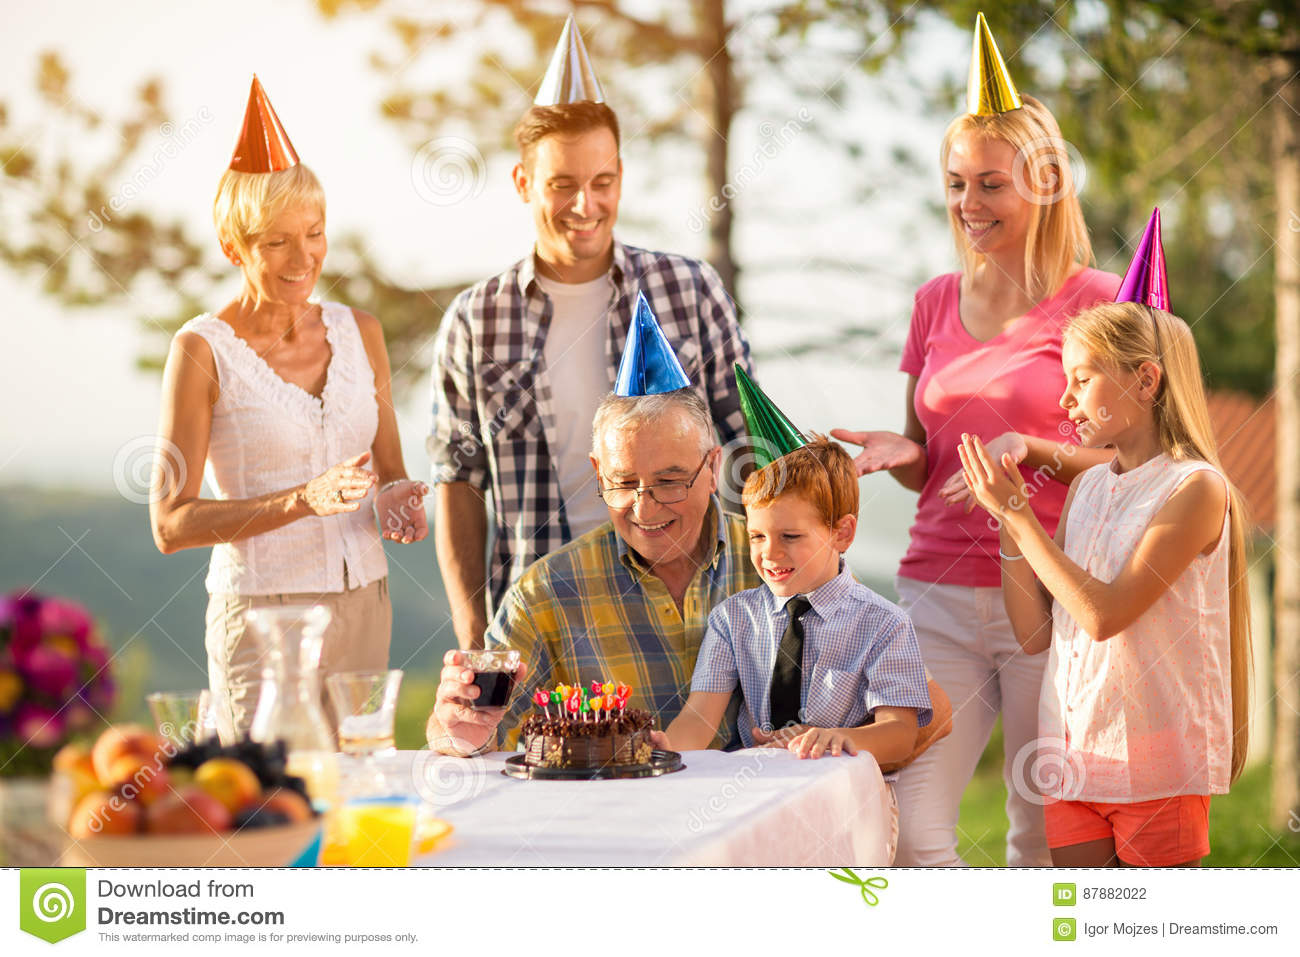 Grandfather and grandson on birthday party celebration